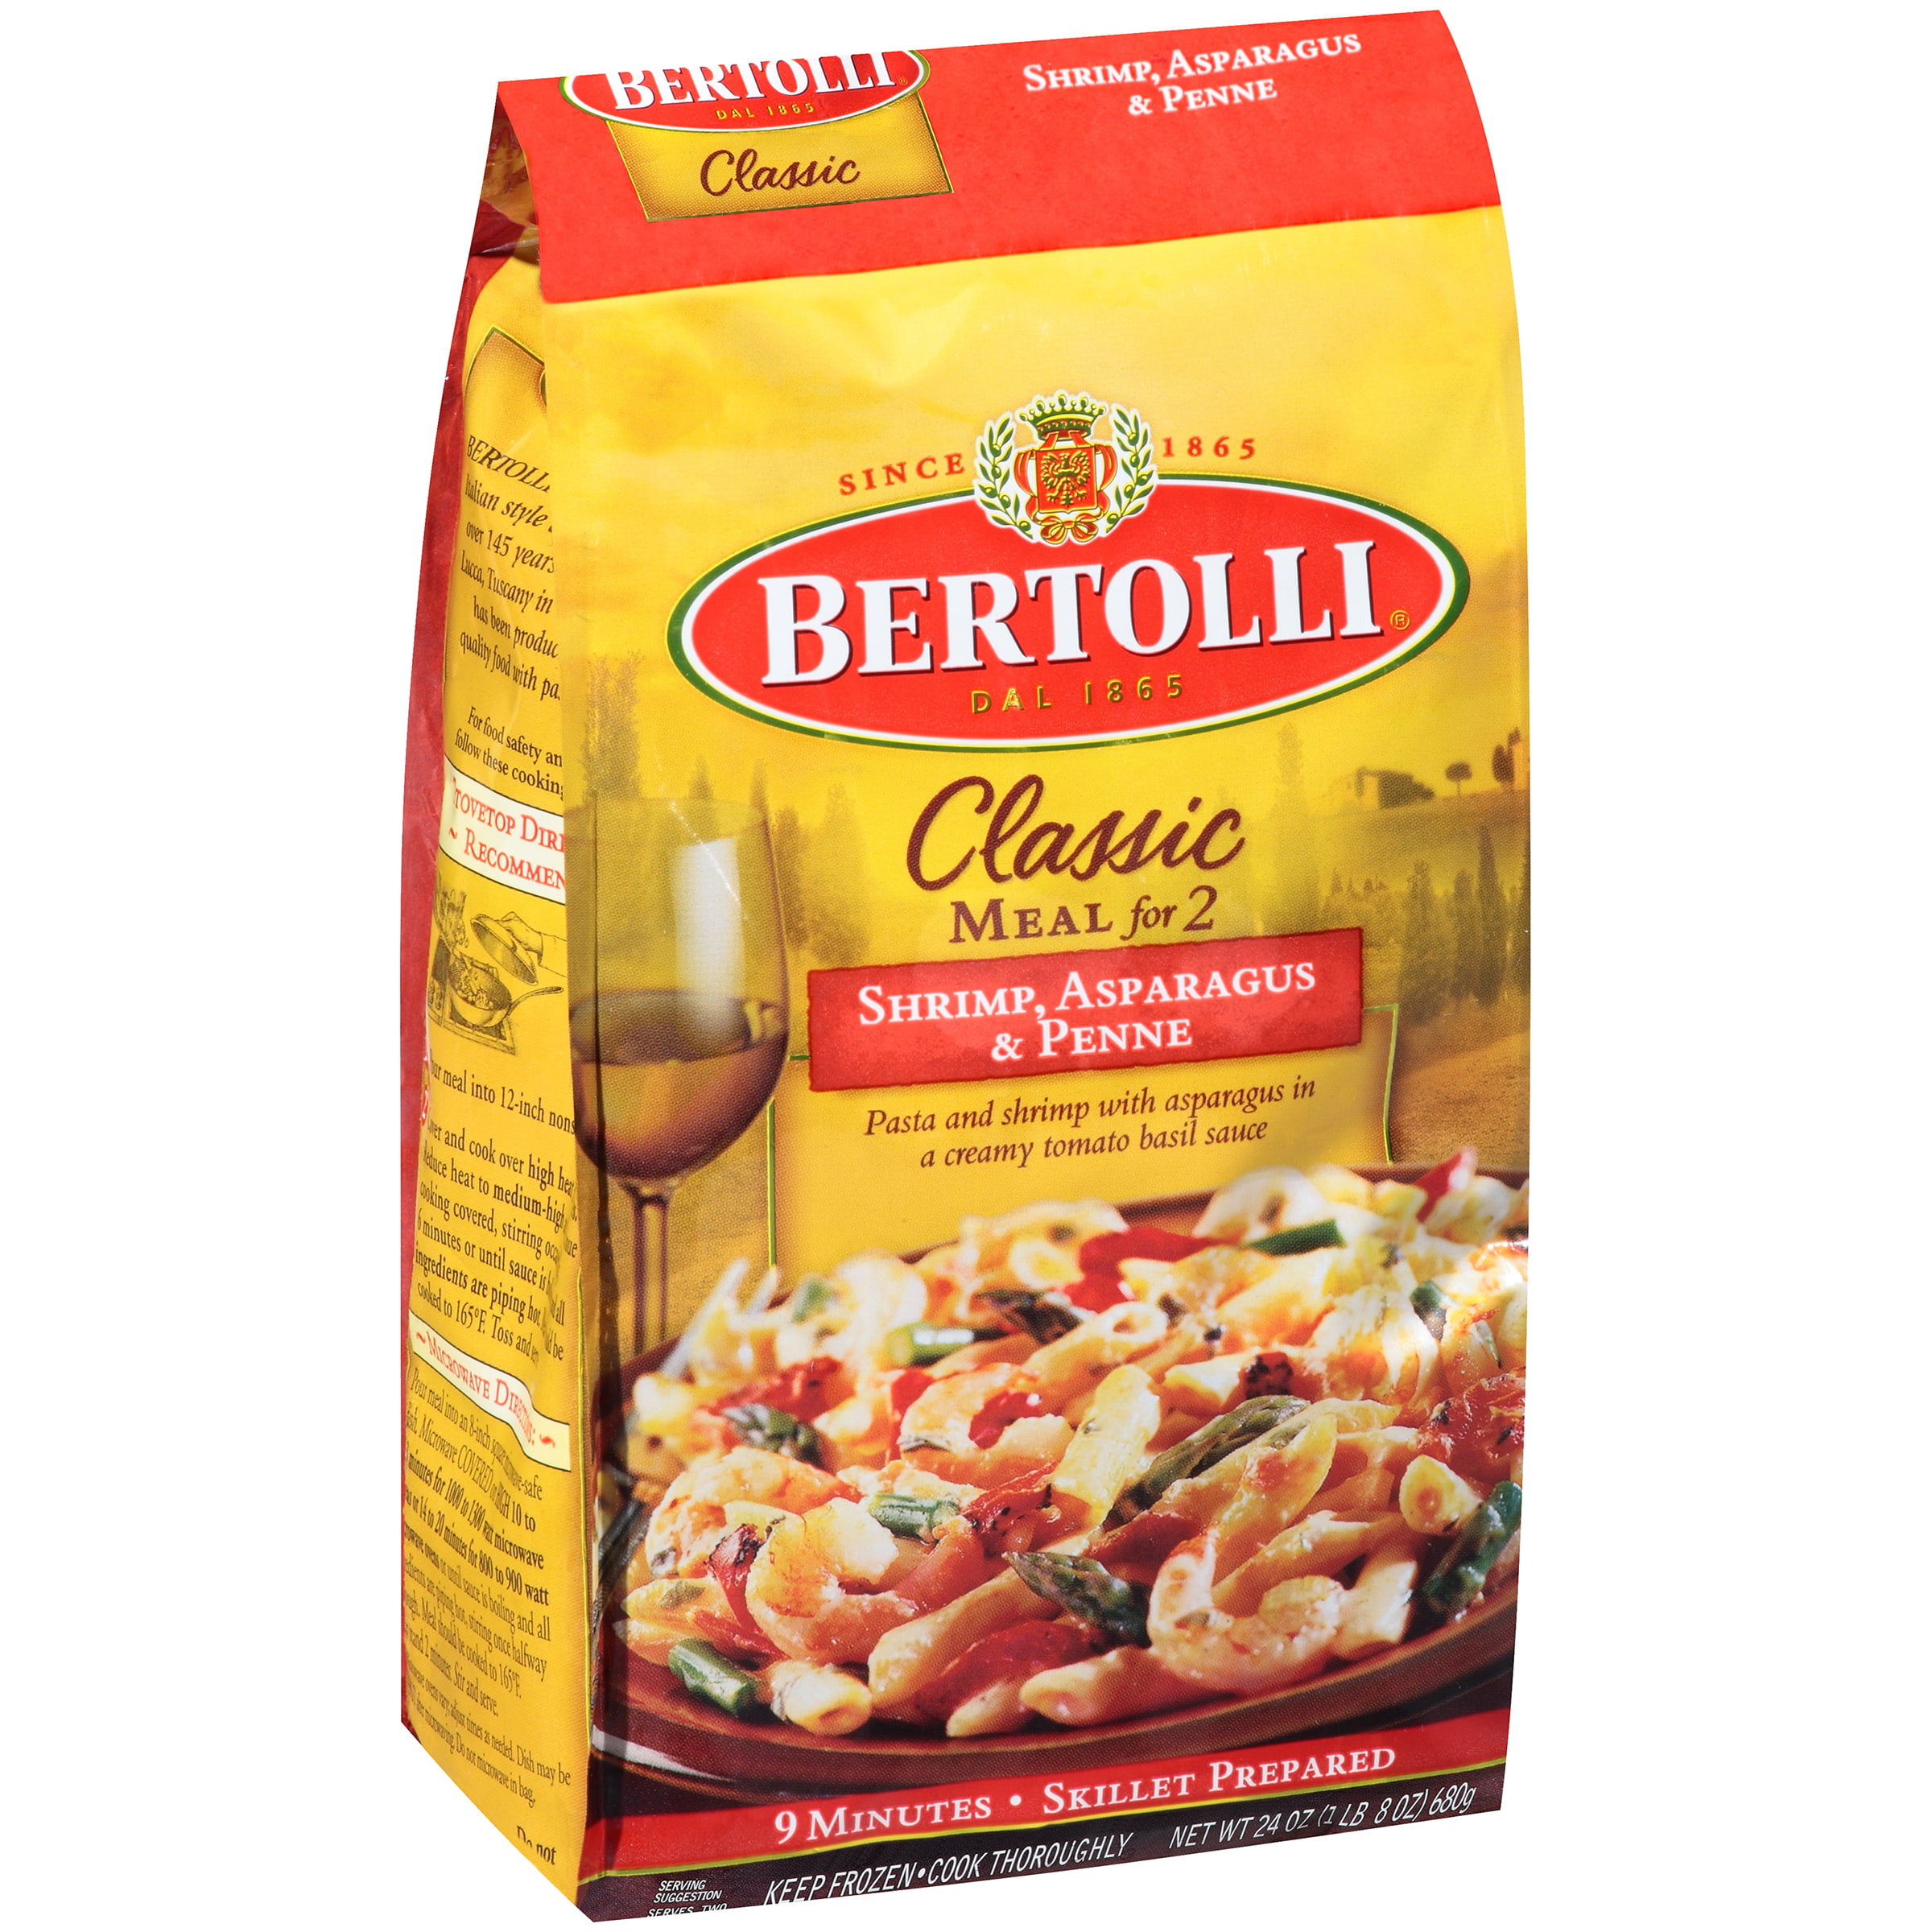 Bertolli Classic Meal for 2 Shrimp, Asparagus & Penne 24 oz. Bag by ConAgra Foods Inc.